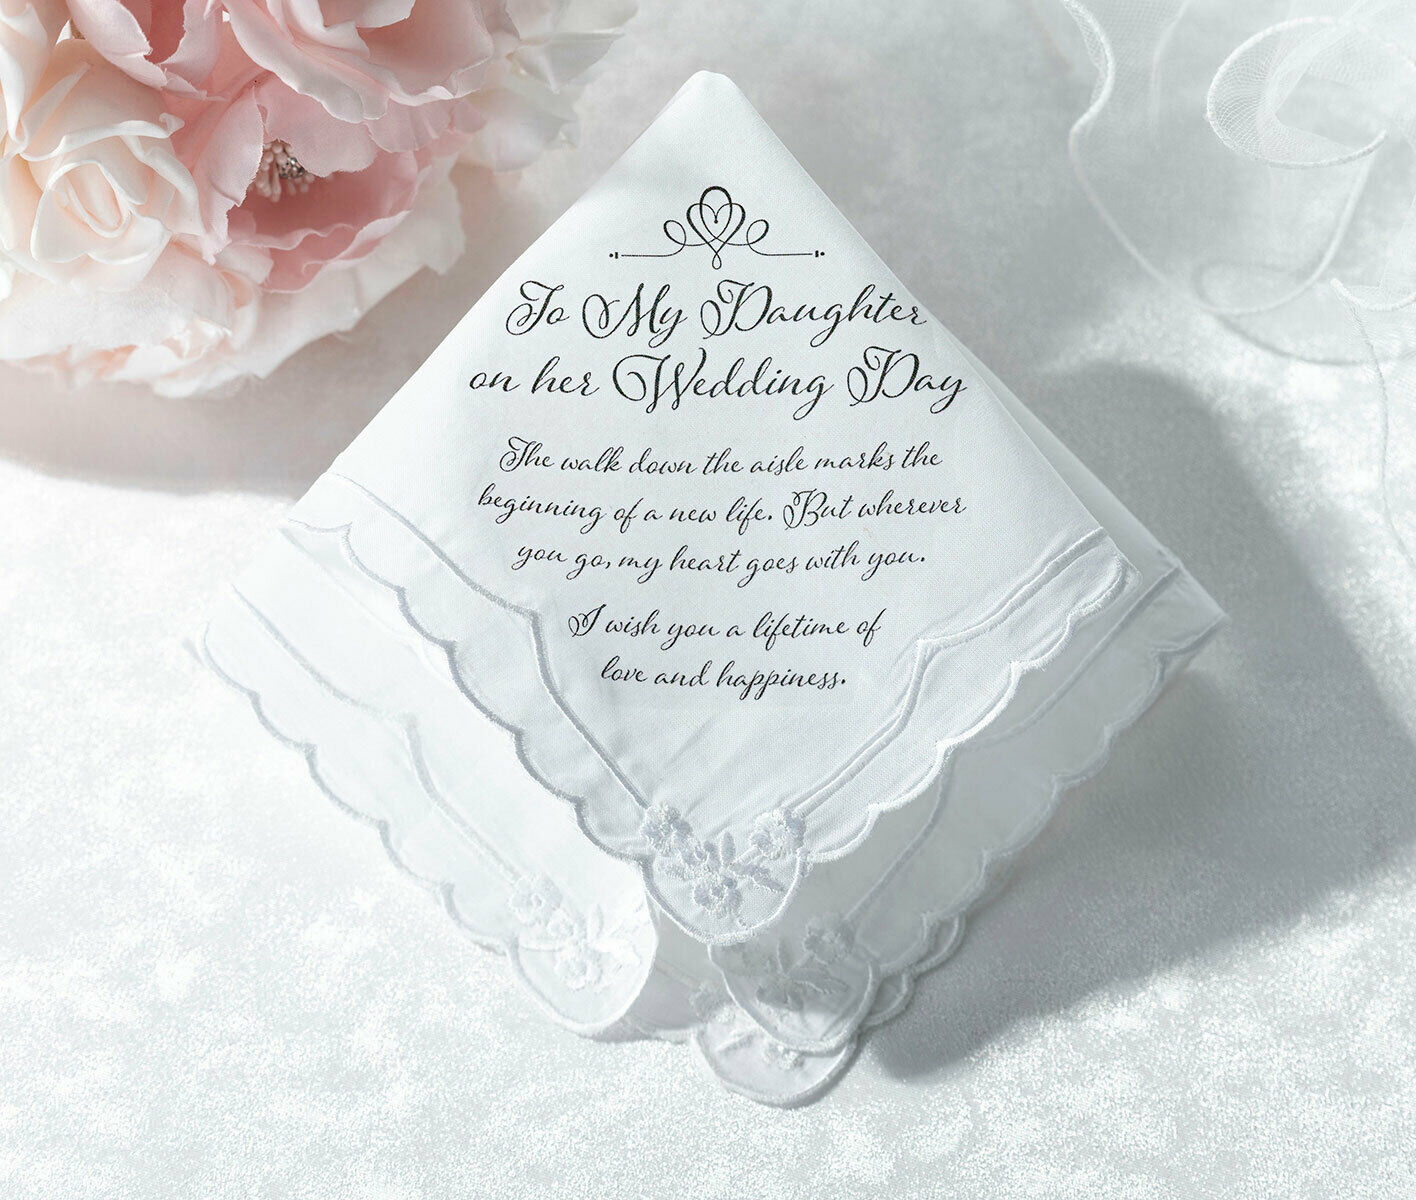 FOR MY DAUGHTER ON HER WEDDING DAY HANKY FROM MUM DAD GIFTS